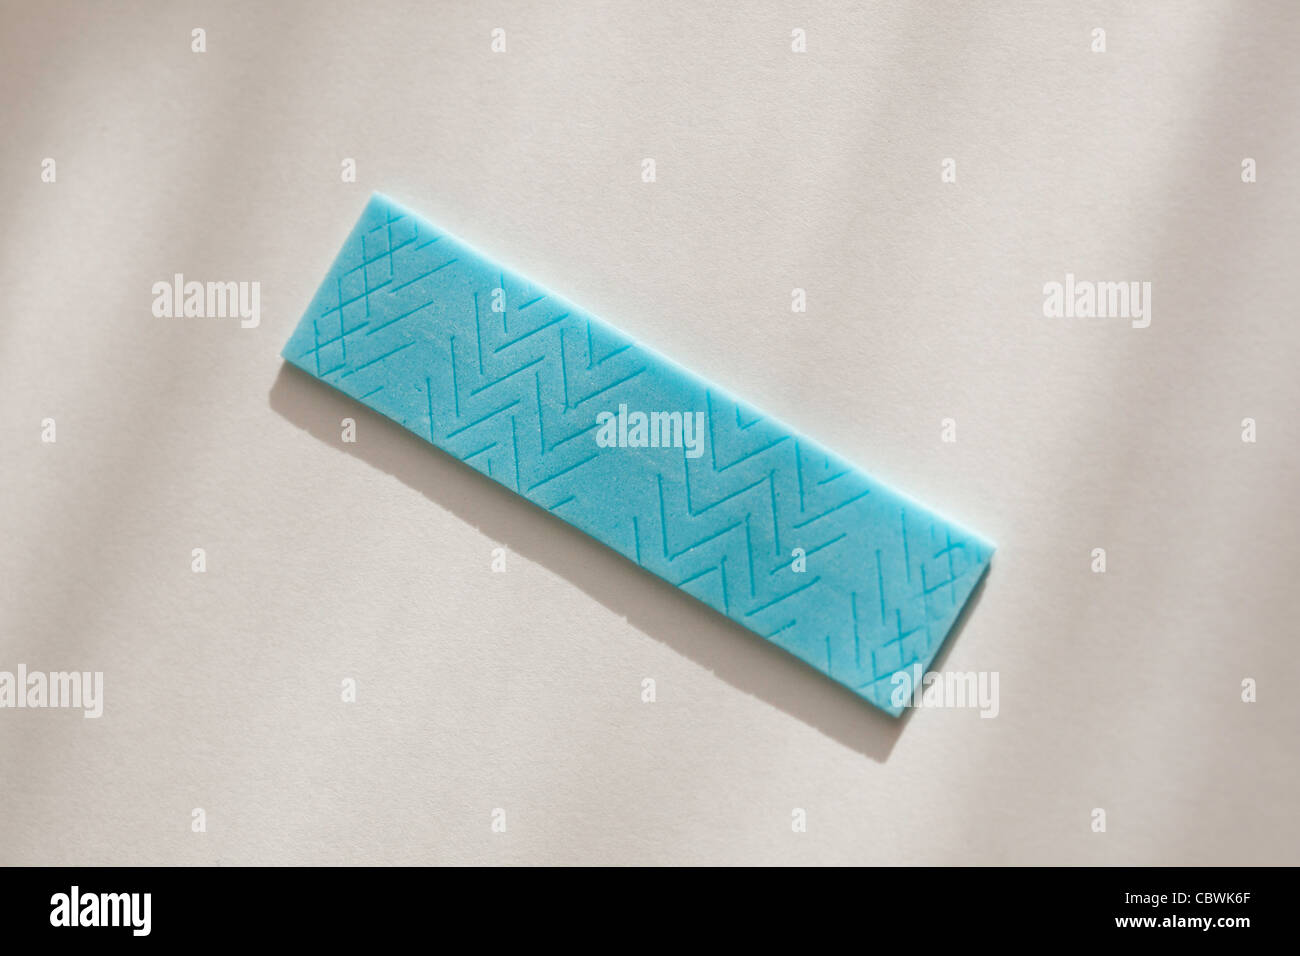 stick of blue chewing gum - Stock Image